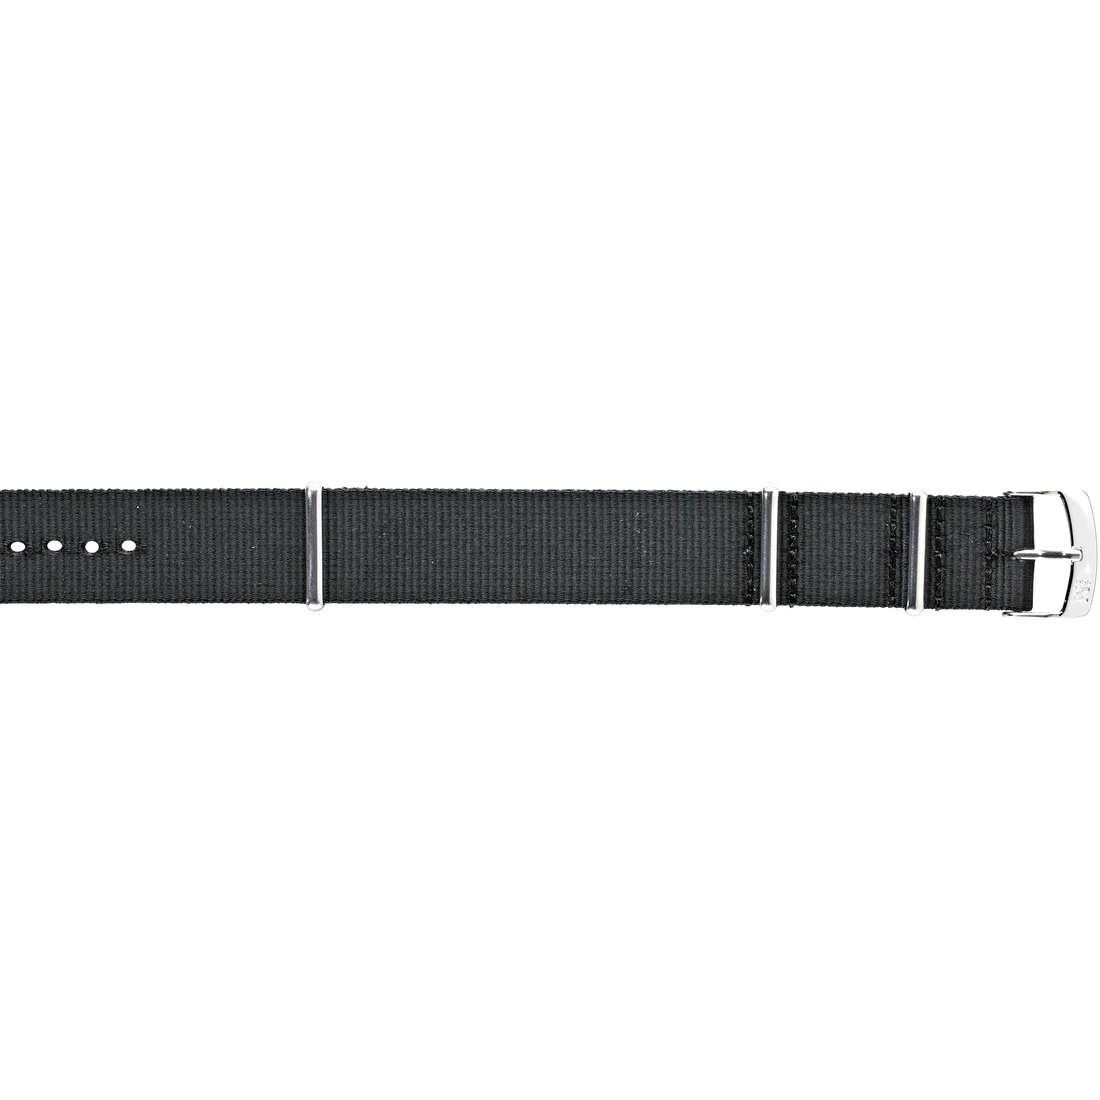 watch watch bands watch straps man Morellato Morellato 1930 A01U3972A74019CR18